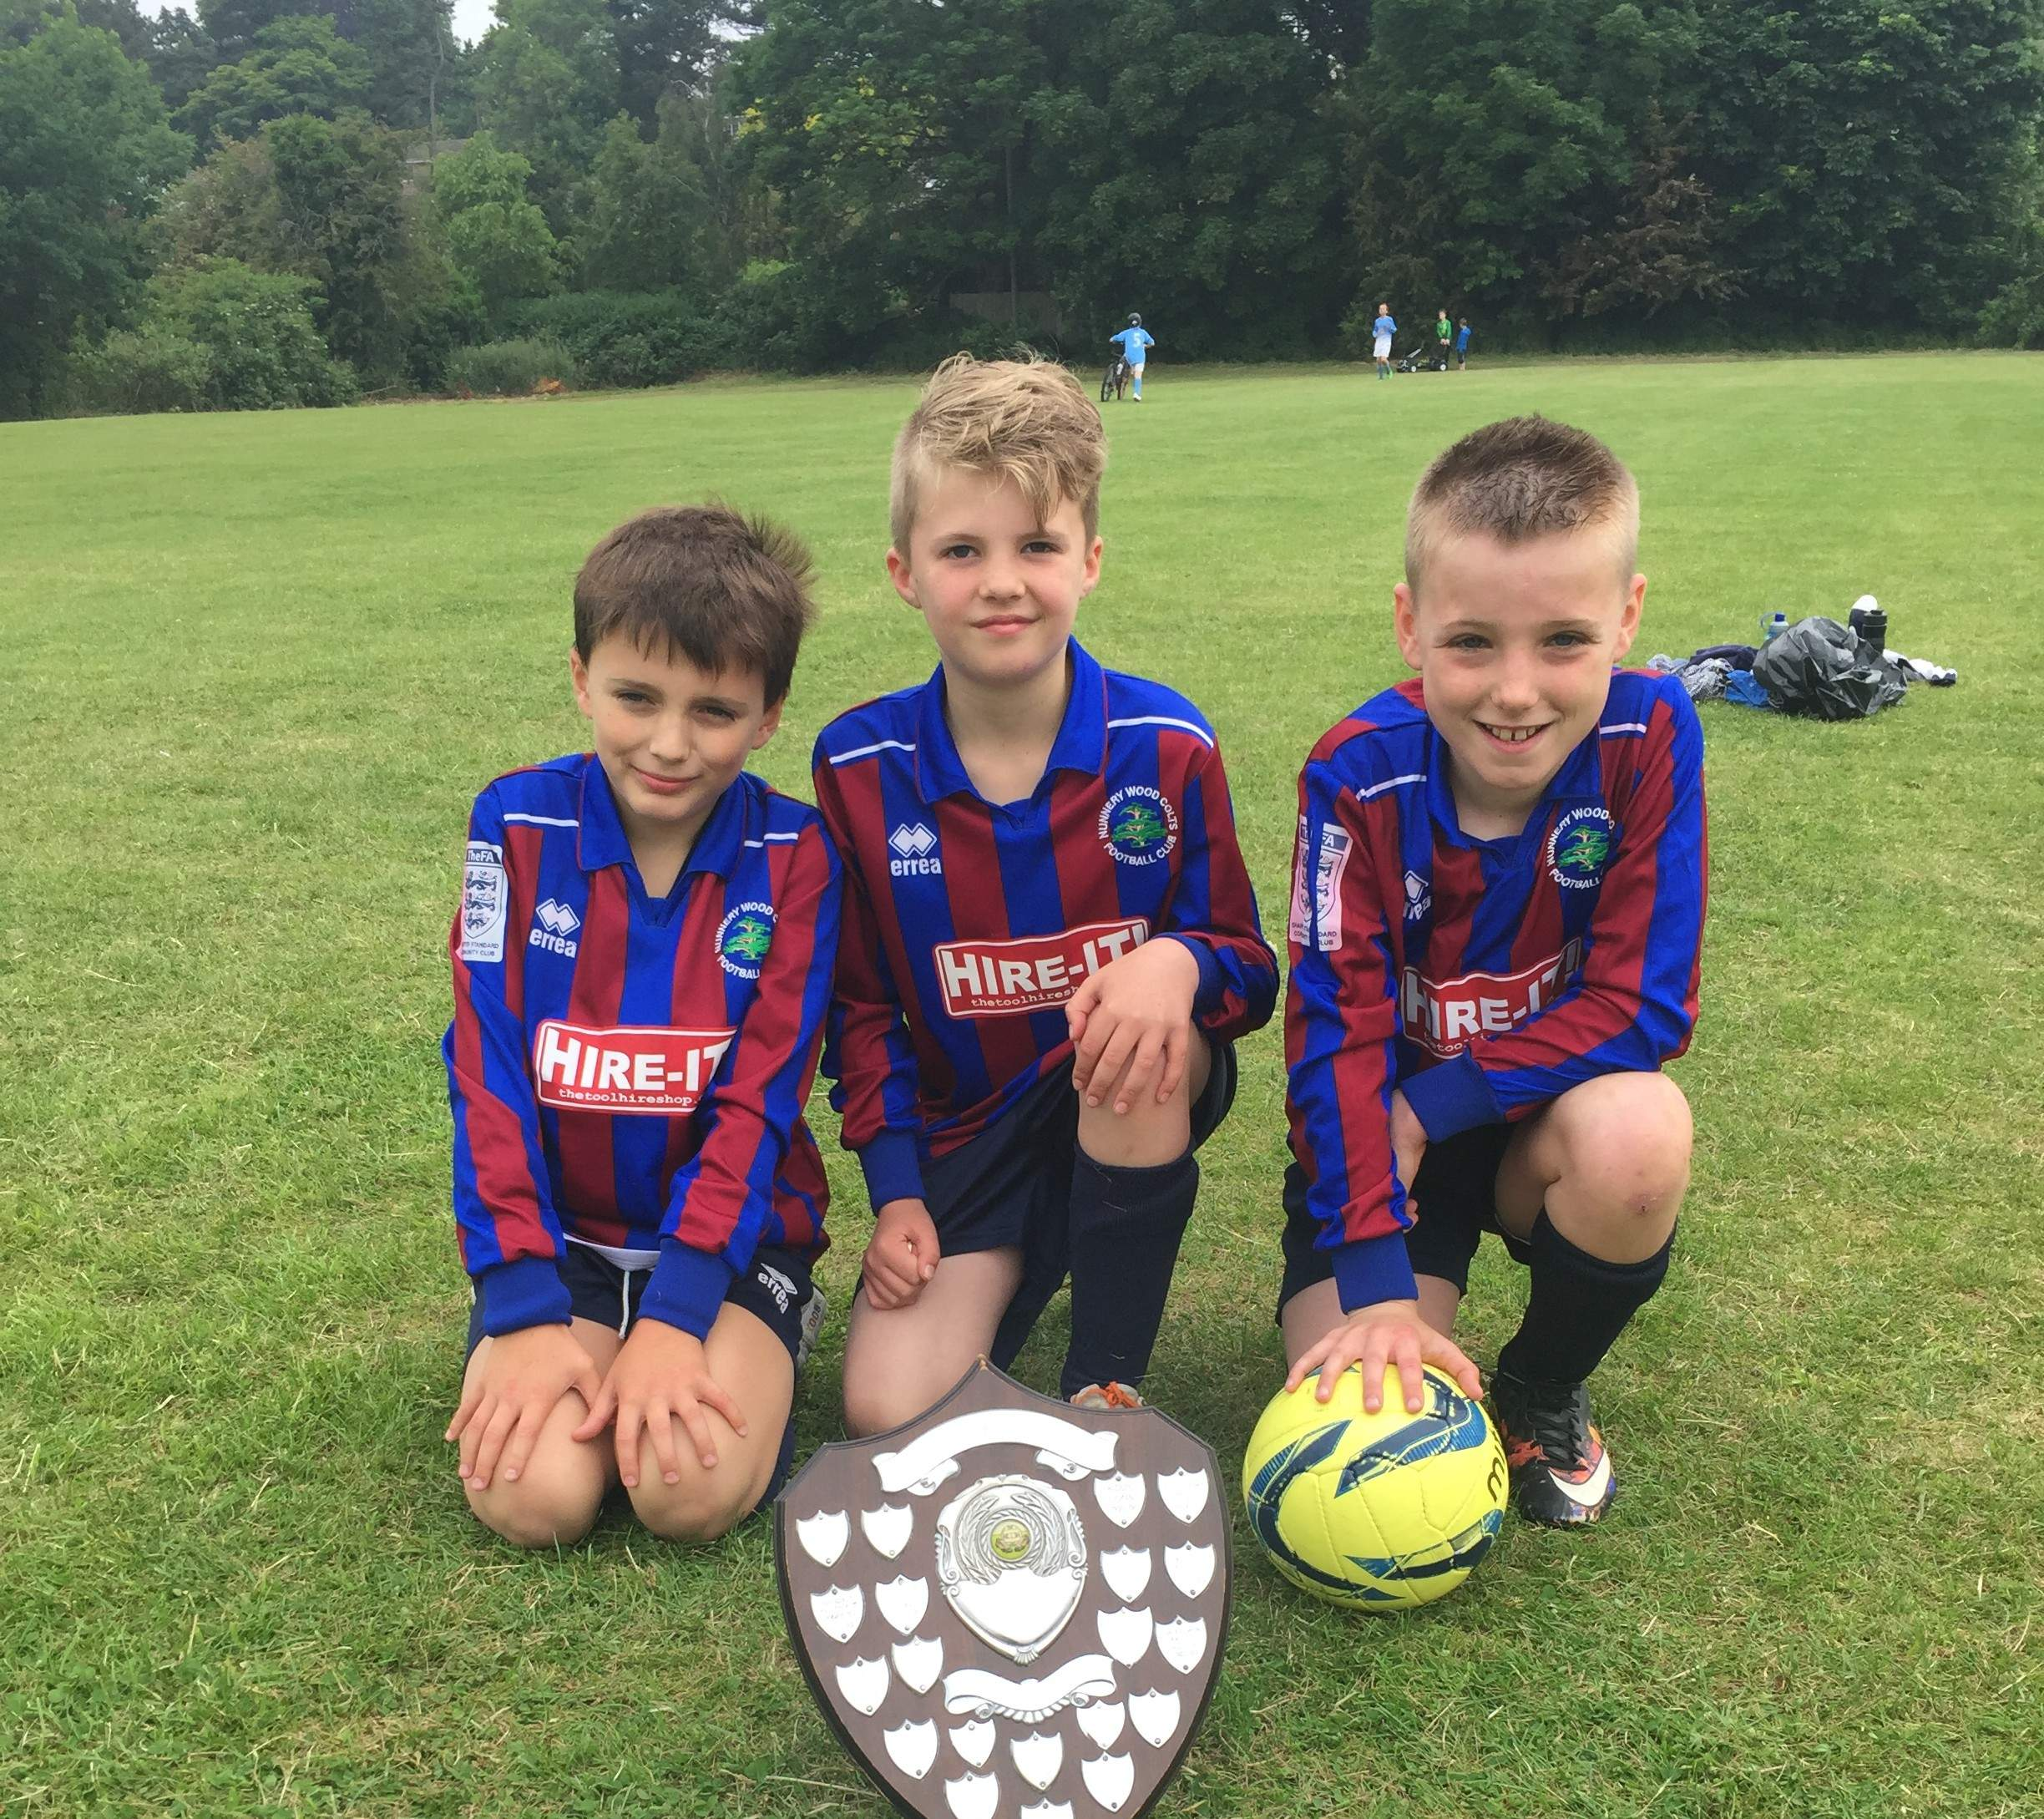 Students Awarded Stourport League's Fair Play Award